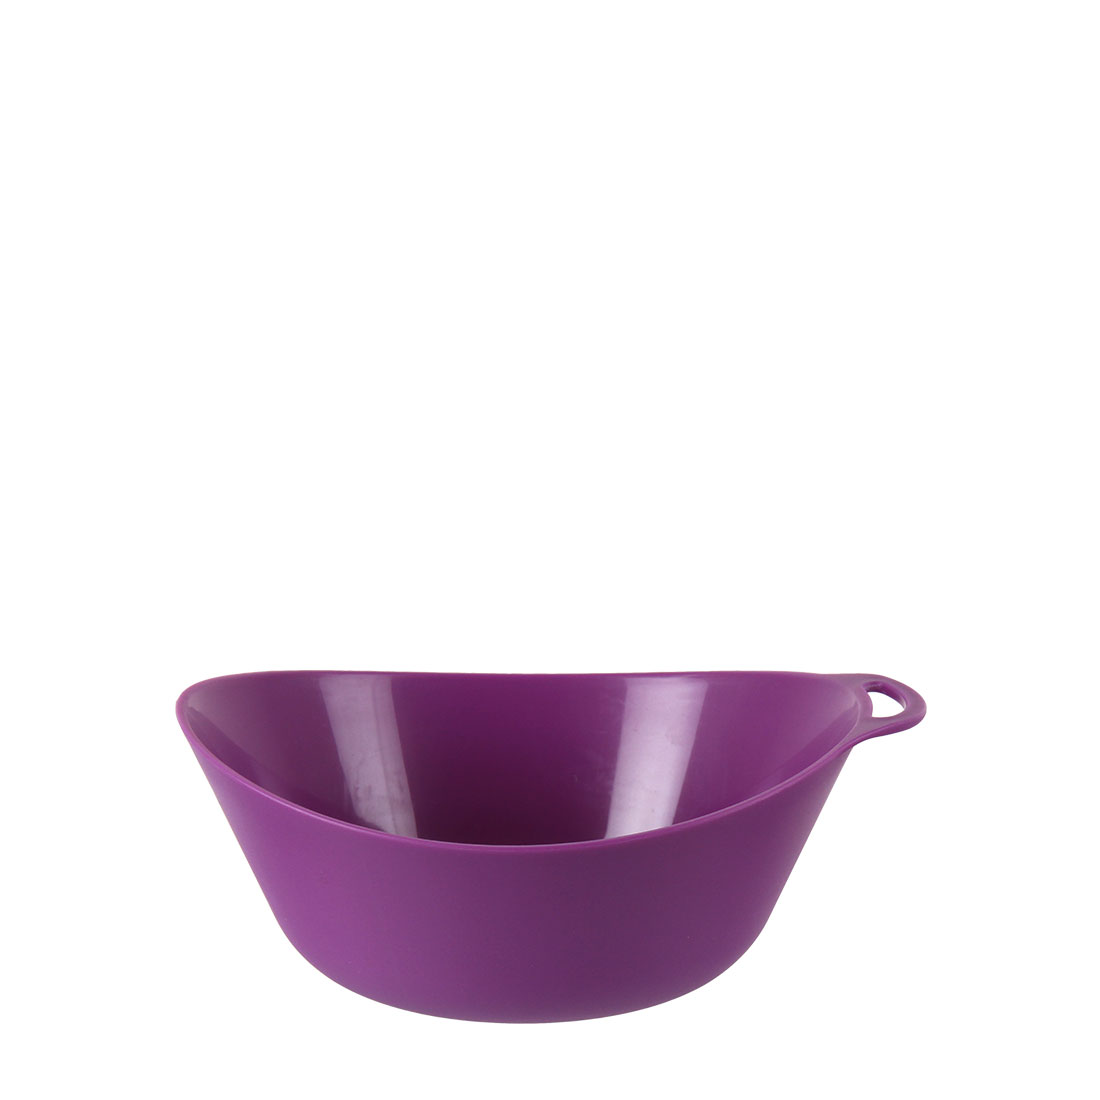 Ellipse Camping Bowl (green)